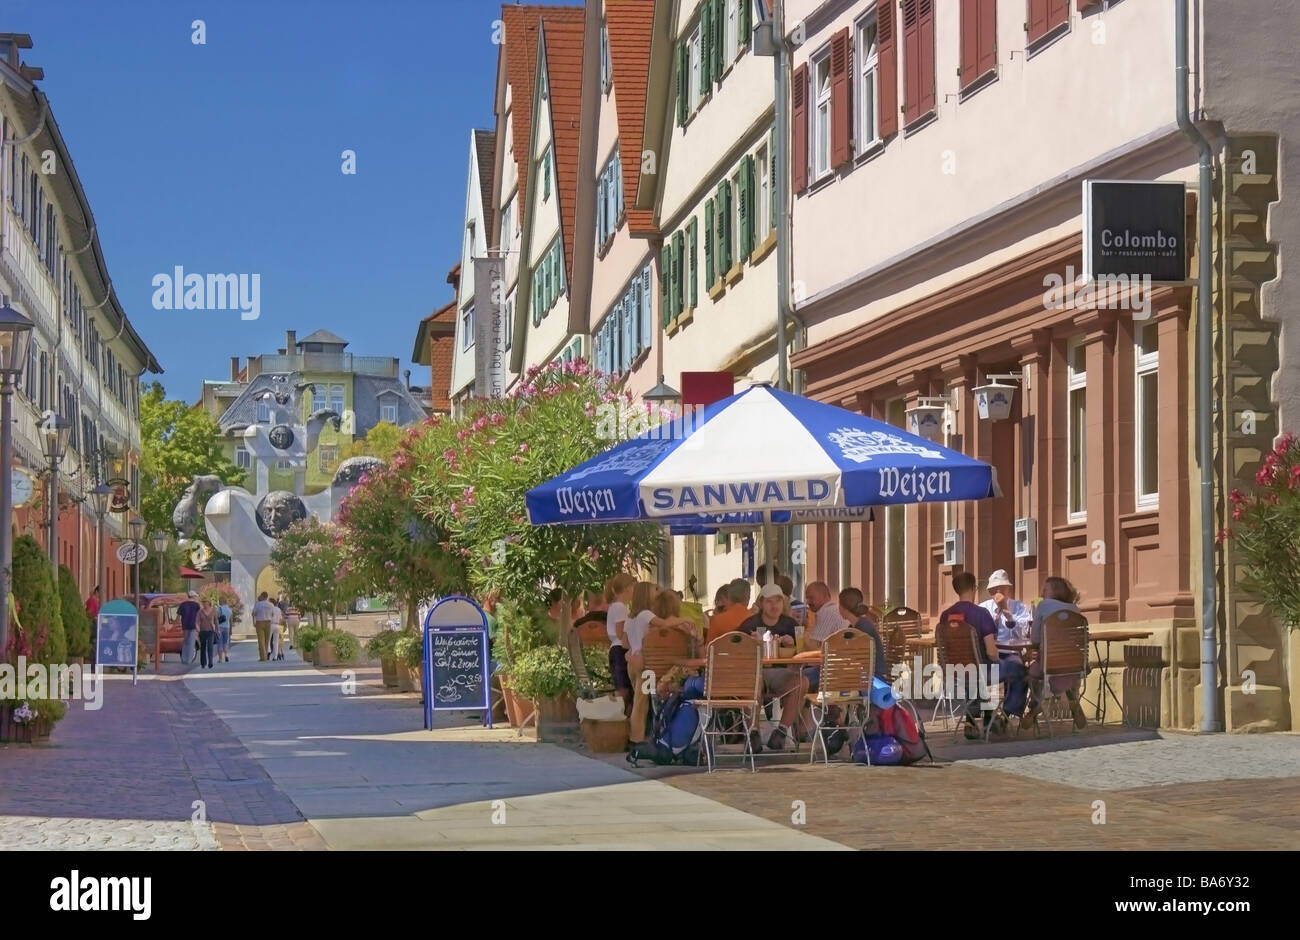 Germany baden w rttemberg bietigheim bissingen pedestrian zone stock photo royalty free image - Fensterbau bietigheim bissingen ...